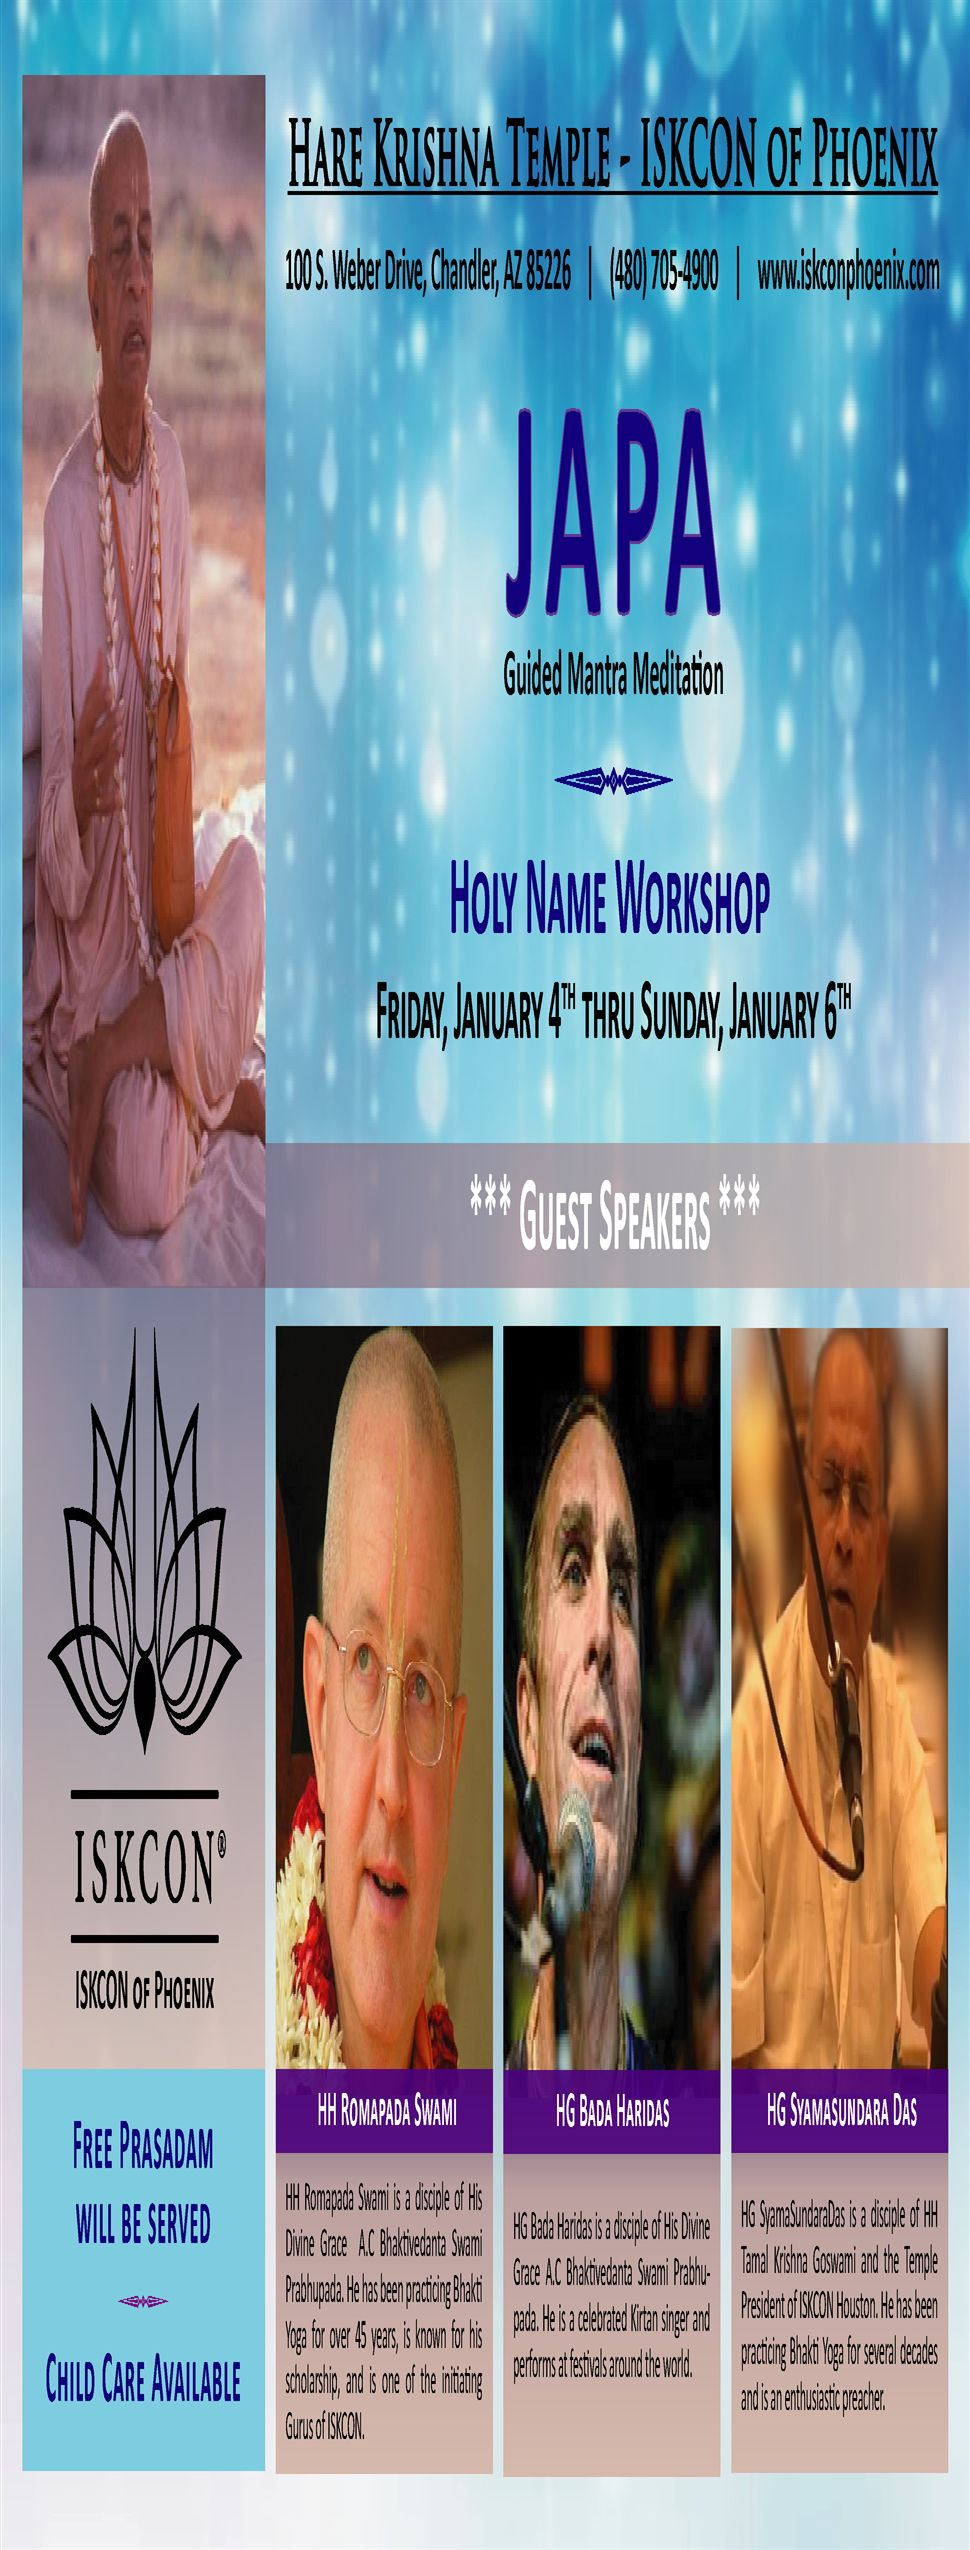 Holy Name Workshop/ Japa Retreat by ISKCON of Phoenix